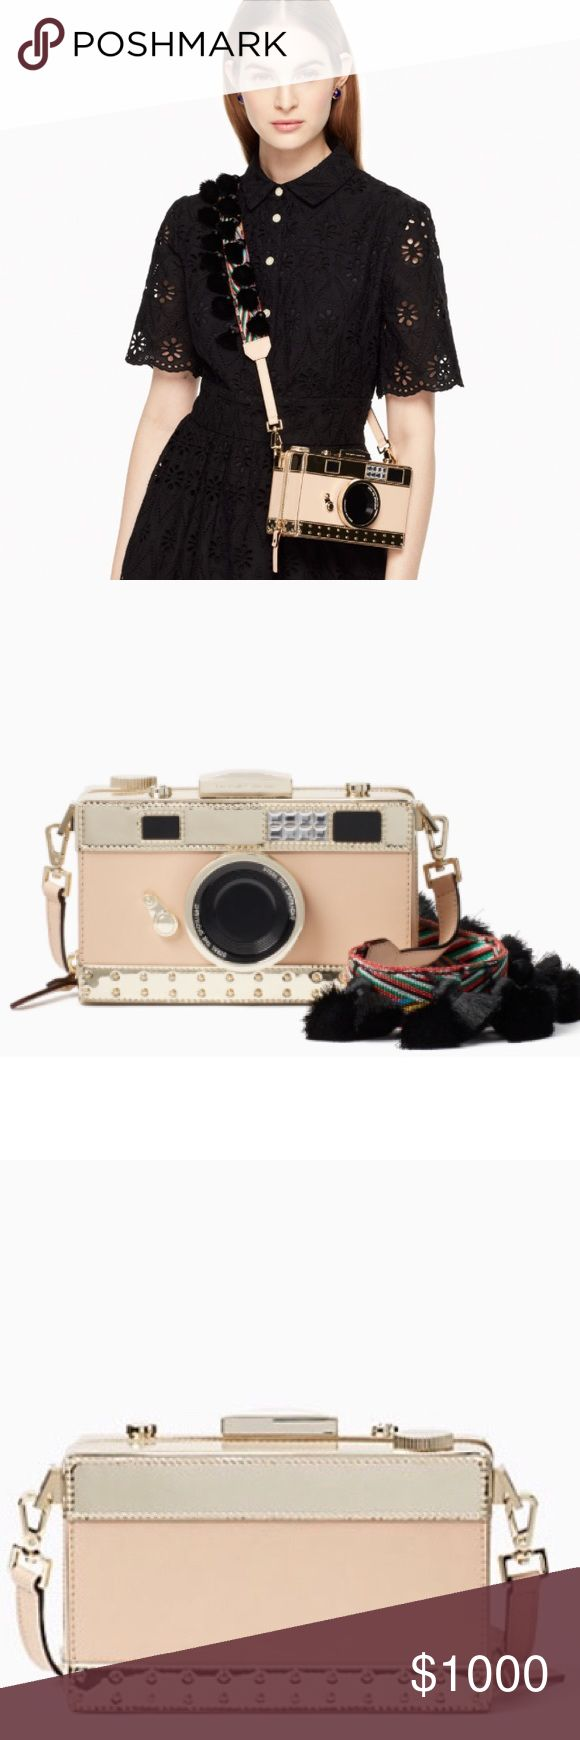 ISO Kate Spade Spice Things Up Camera Novelty BAG I am not selling this item!! I am looking to buy!! NOT the iPhone 7 case, the actual Novelty Clutch/Bag Please. This is my ISO (In Search Of). However I know the sale price was $314 so please don't tell me you have it if you want $400 or more for it!! Thanks in advance for helping me find it!😘 kate spade Bags Shoulder Bags